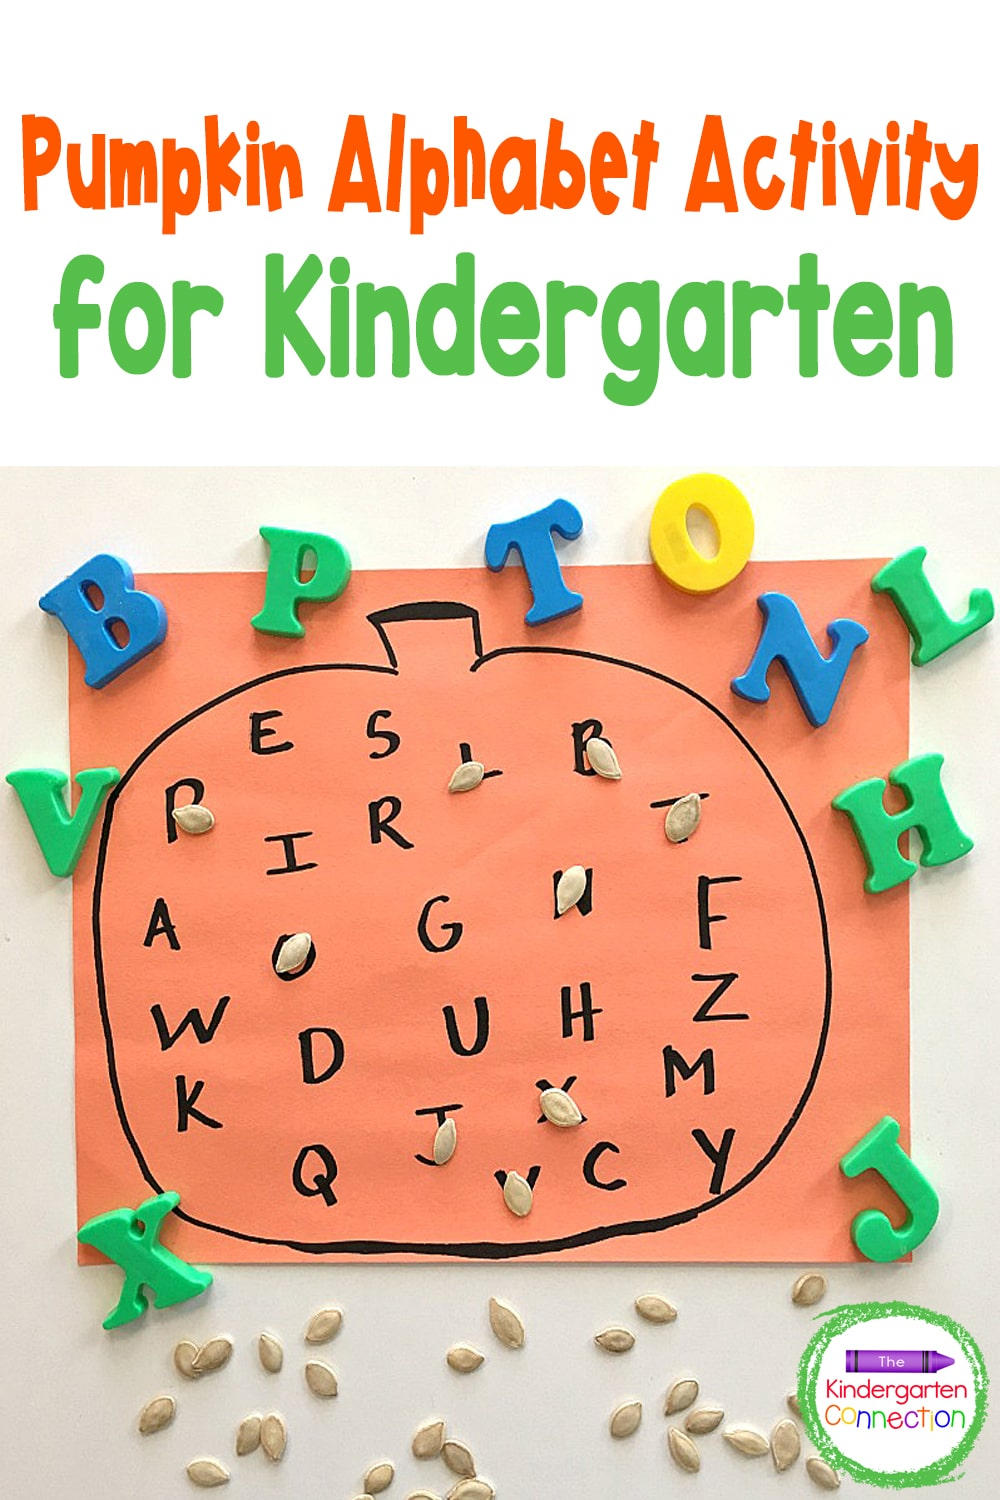 This easy Pumpkin Alphabet Activity is effective, engaging, and so fun to do in any Pre-K or Kindergarten classroom this fall!